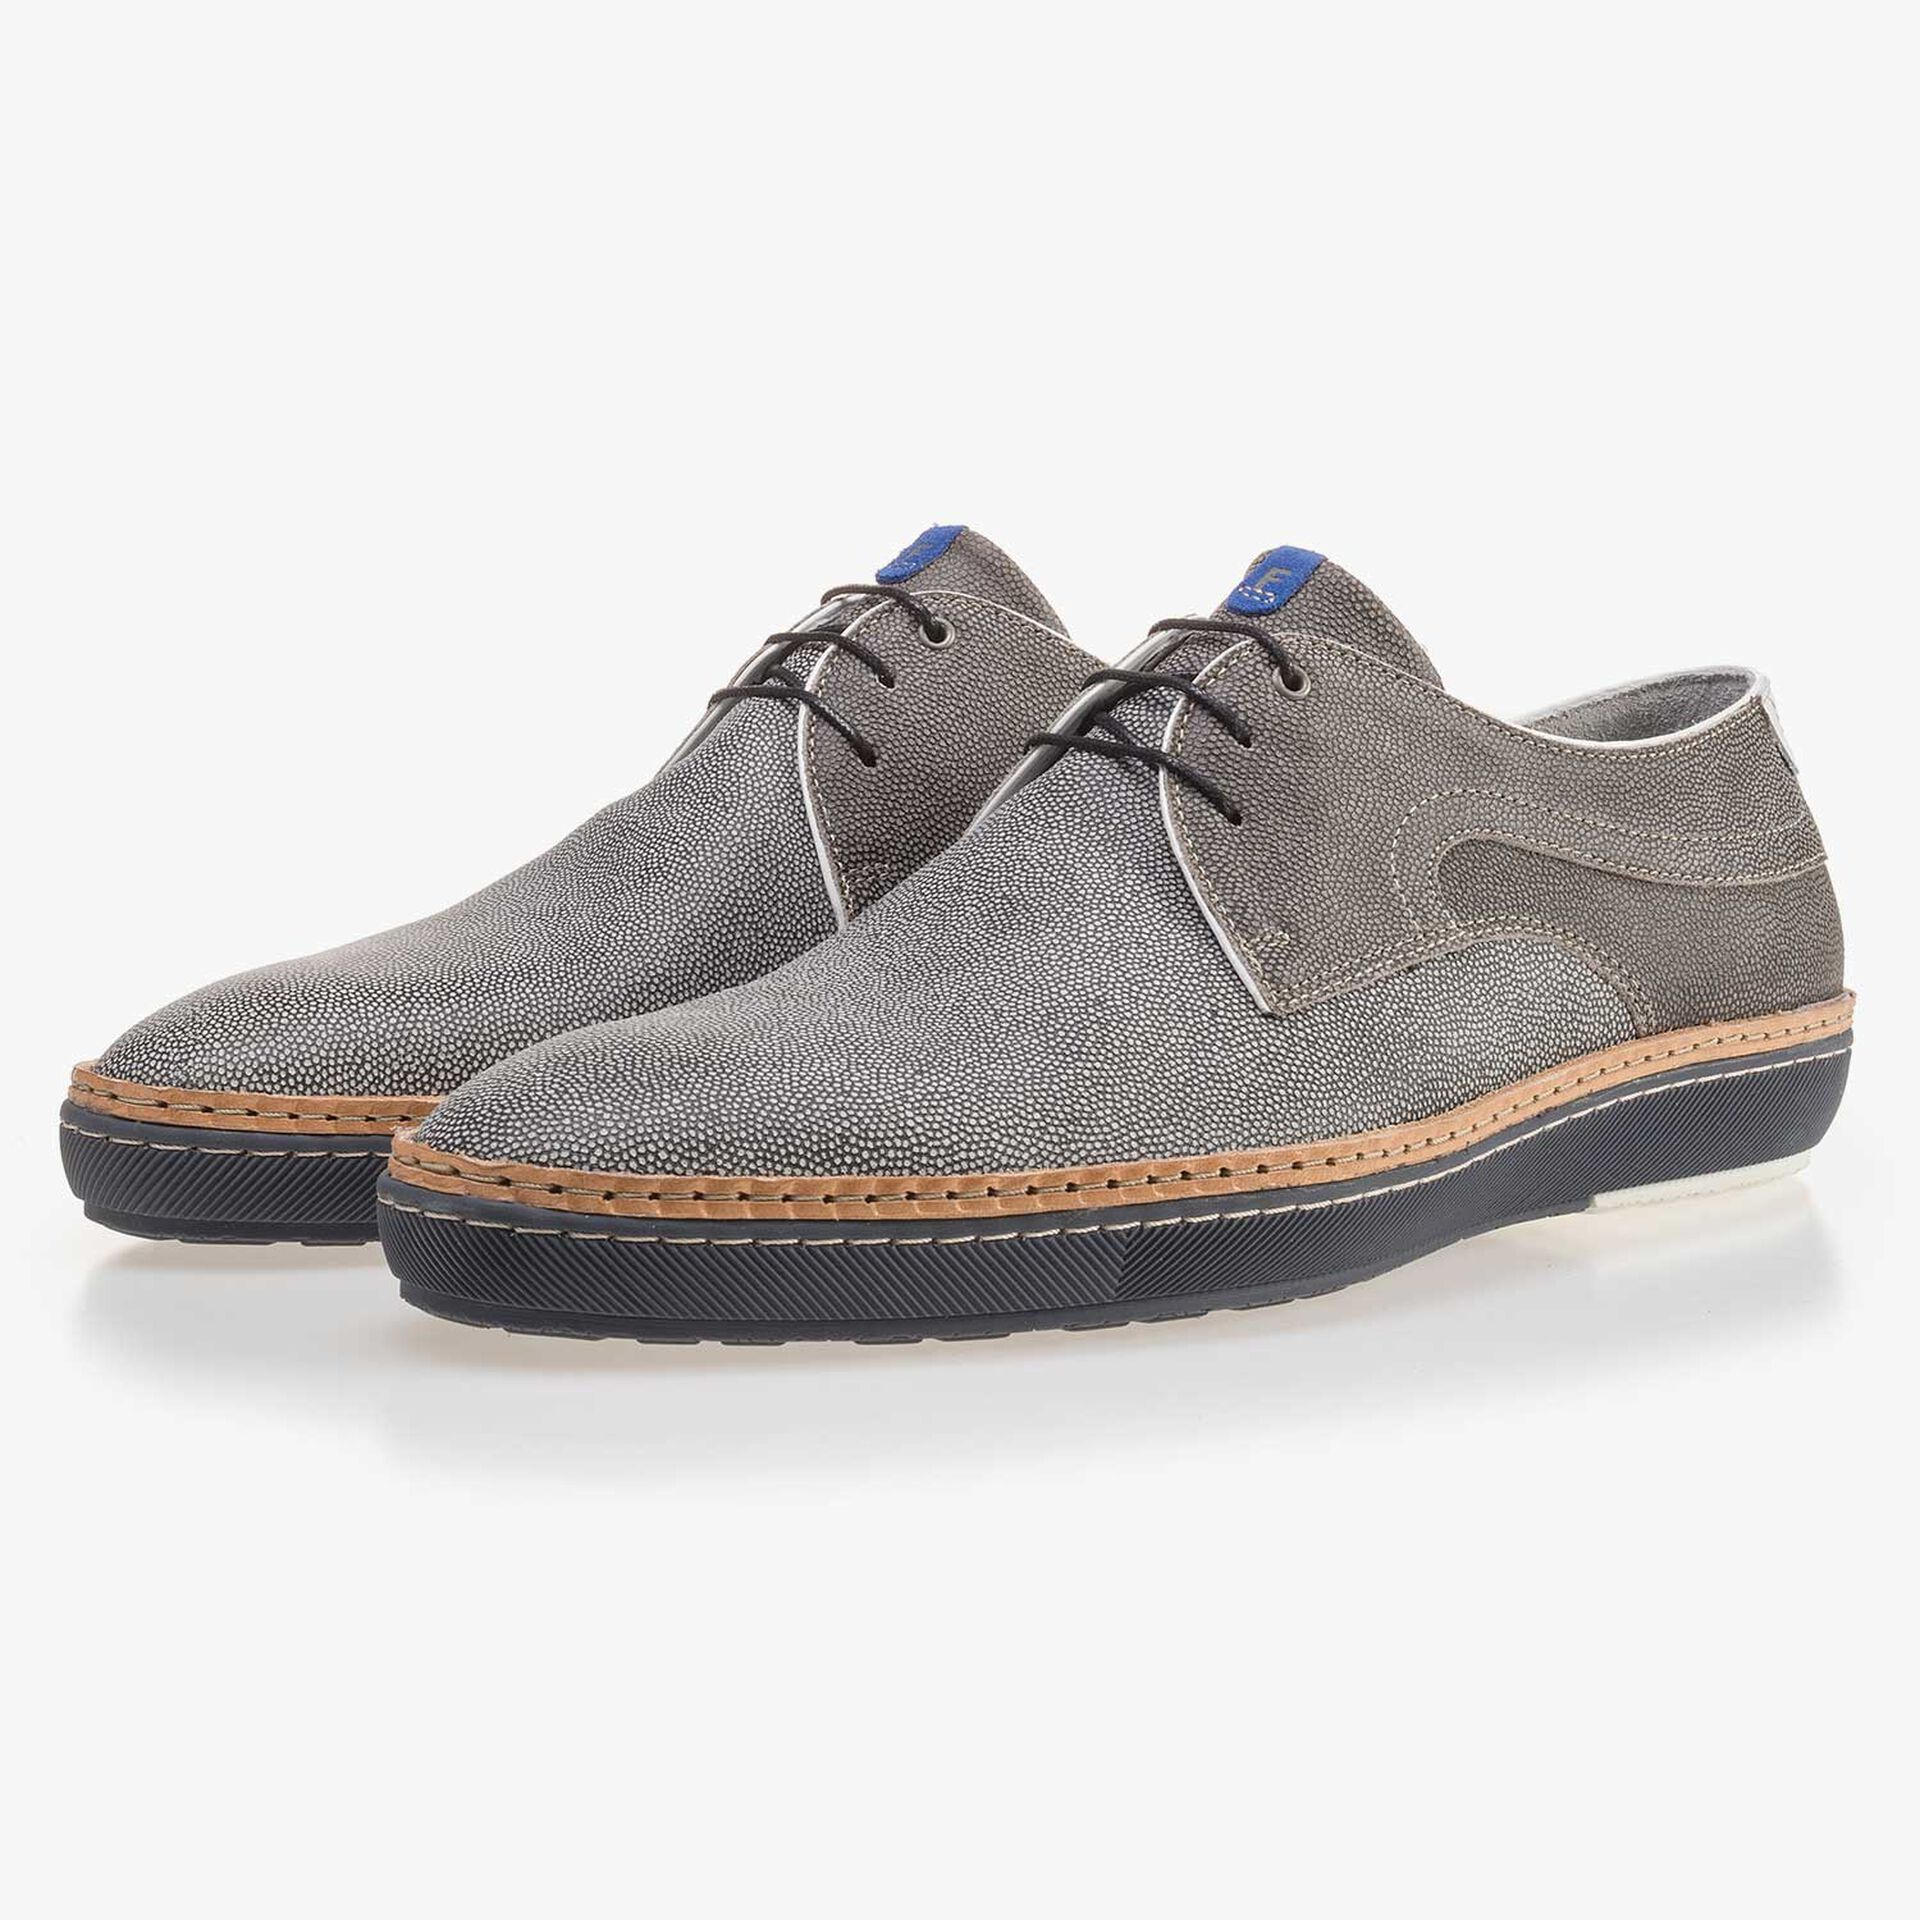 Grey patterned suede leather lace shoe